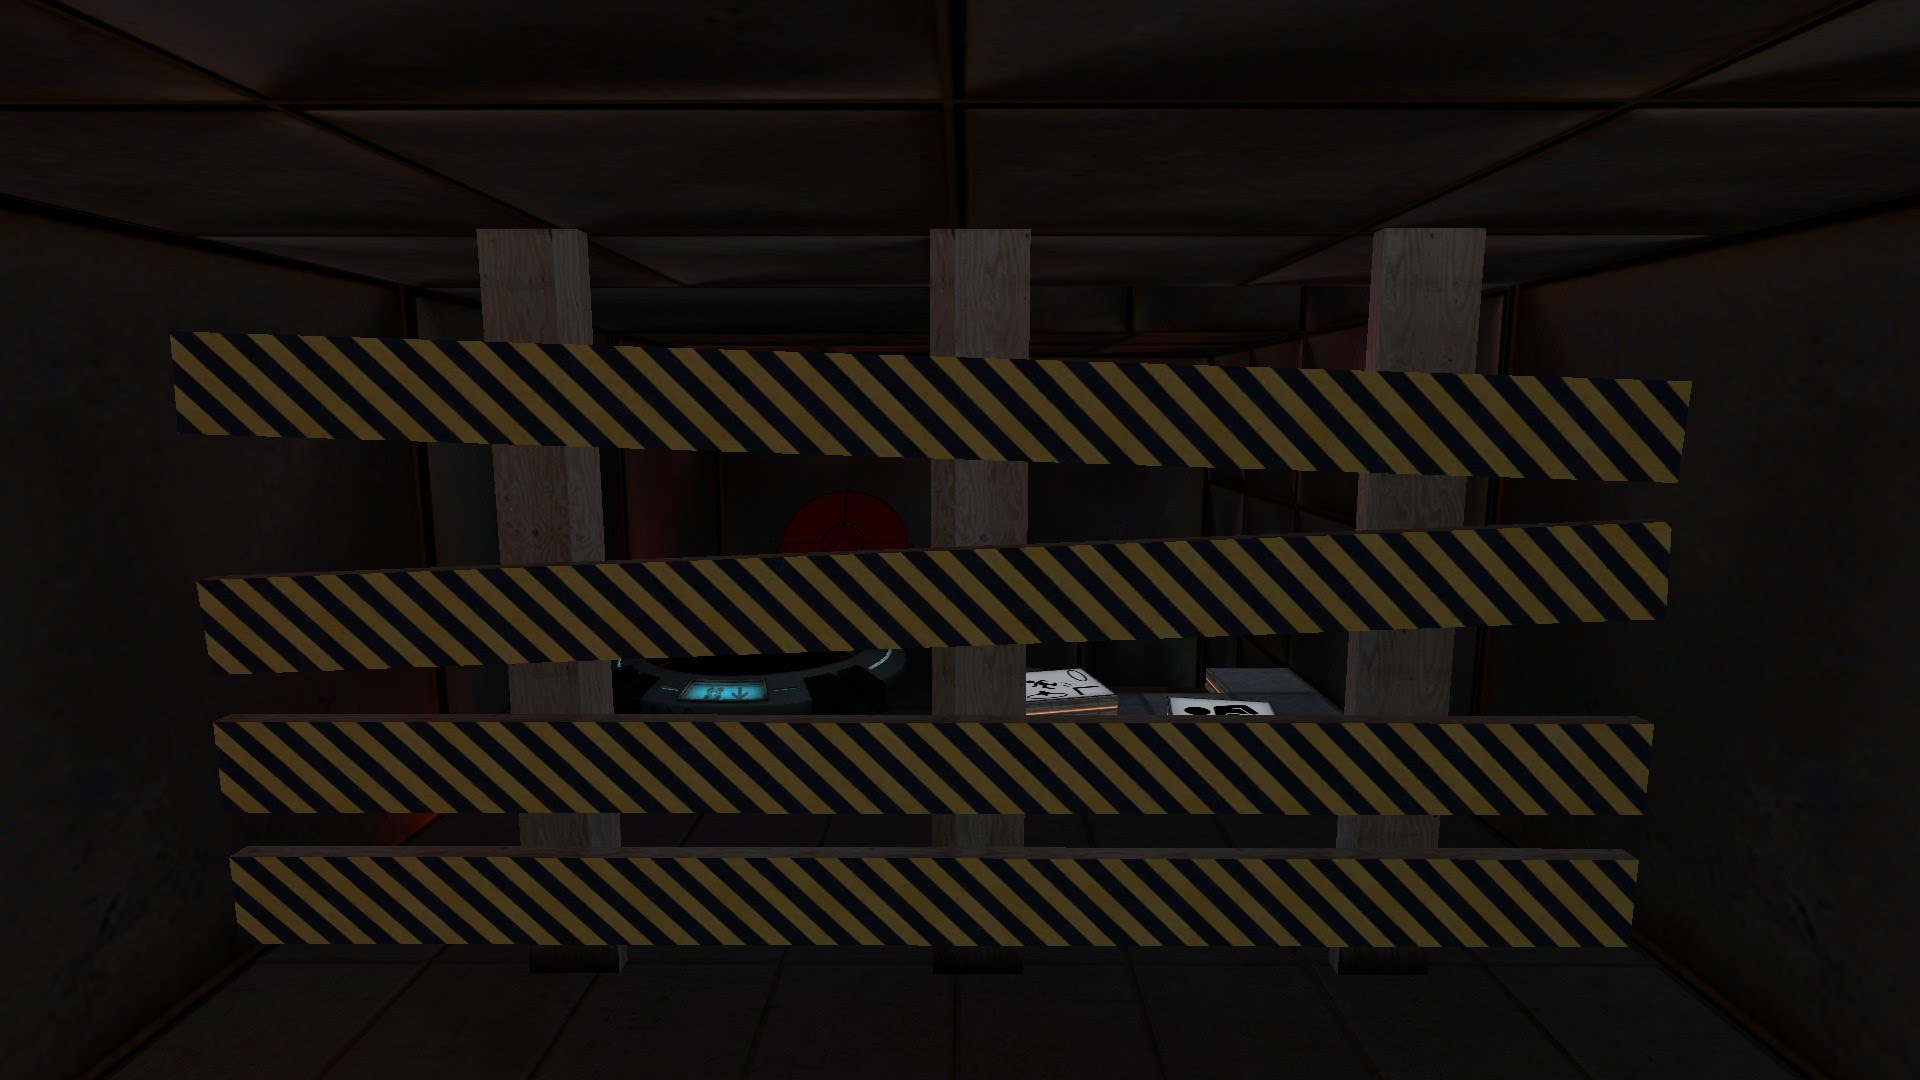 A test chamber under construction is blocked off by a caution barrier.